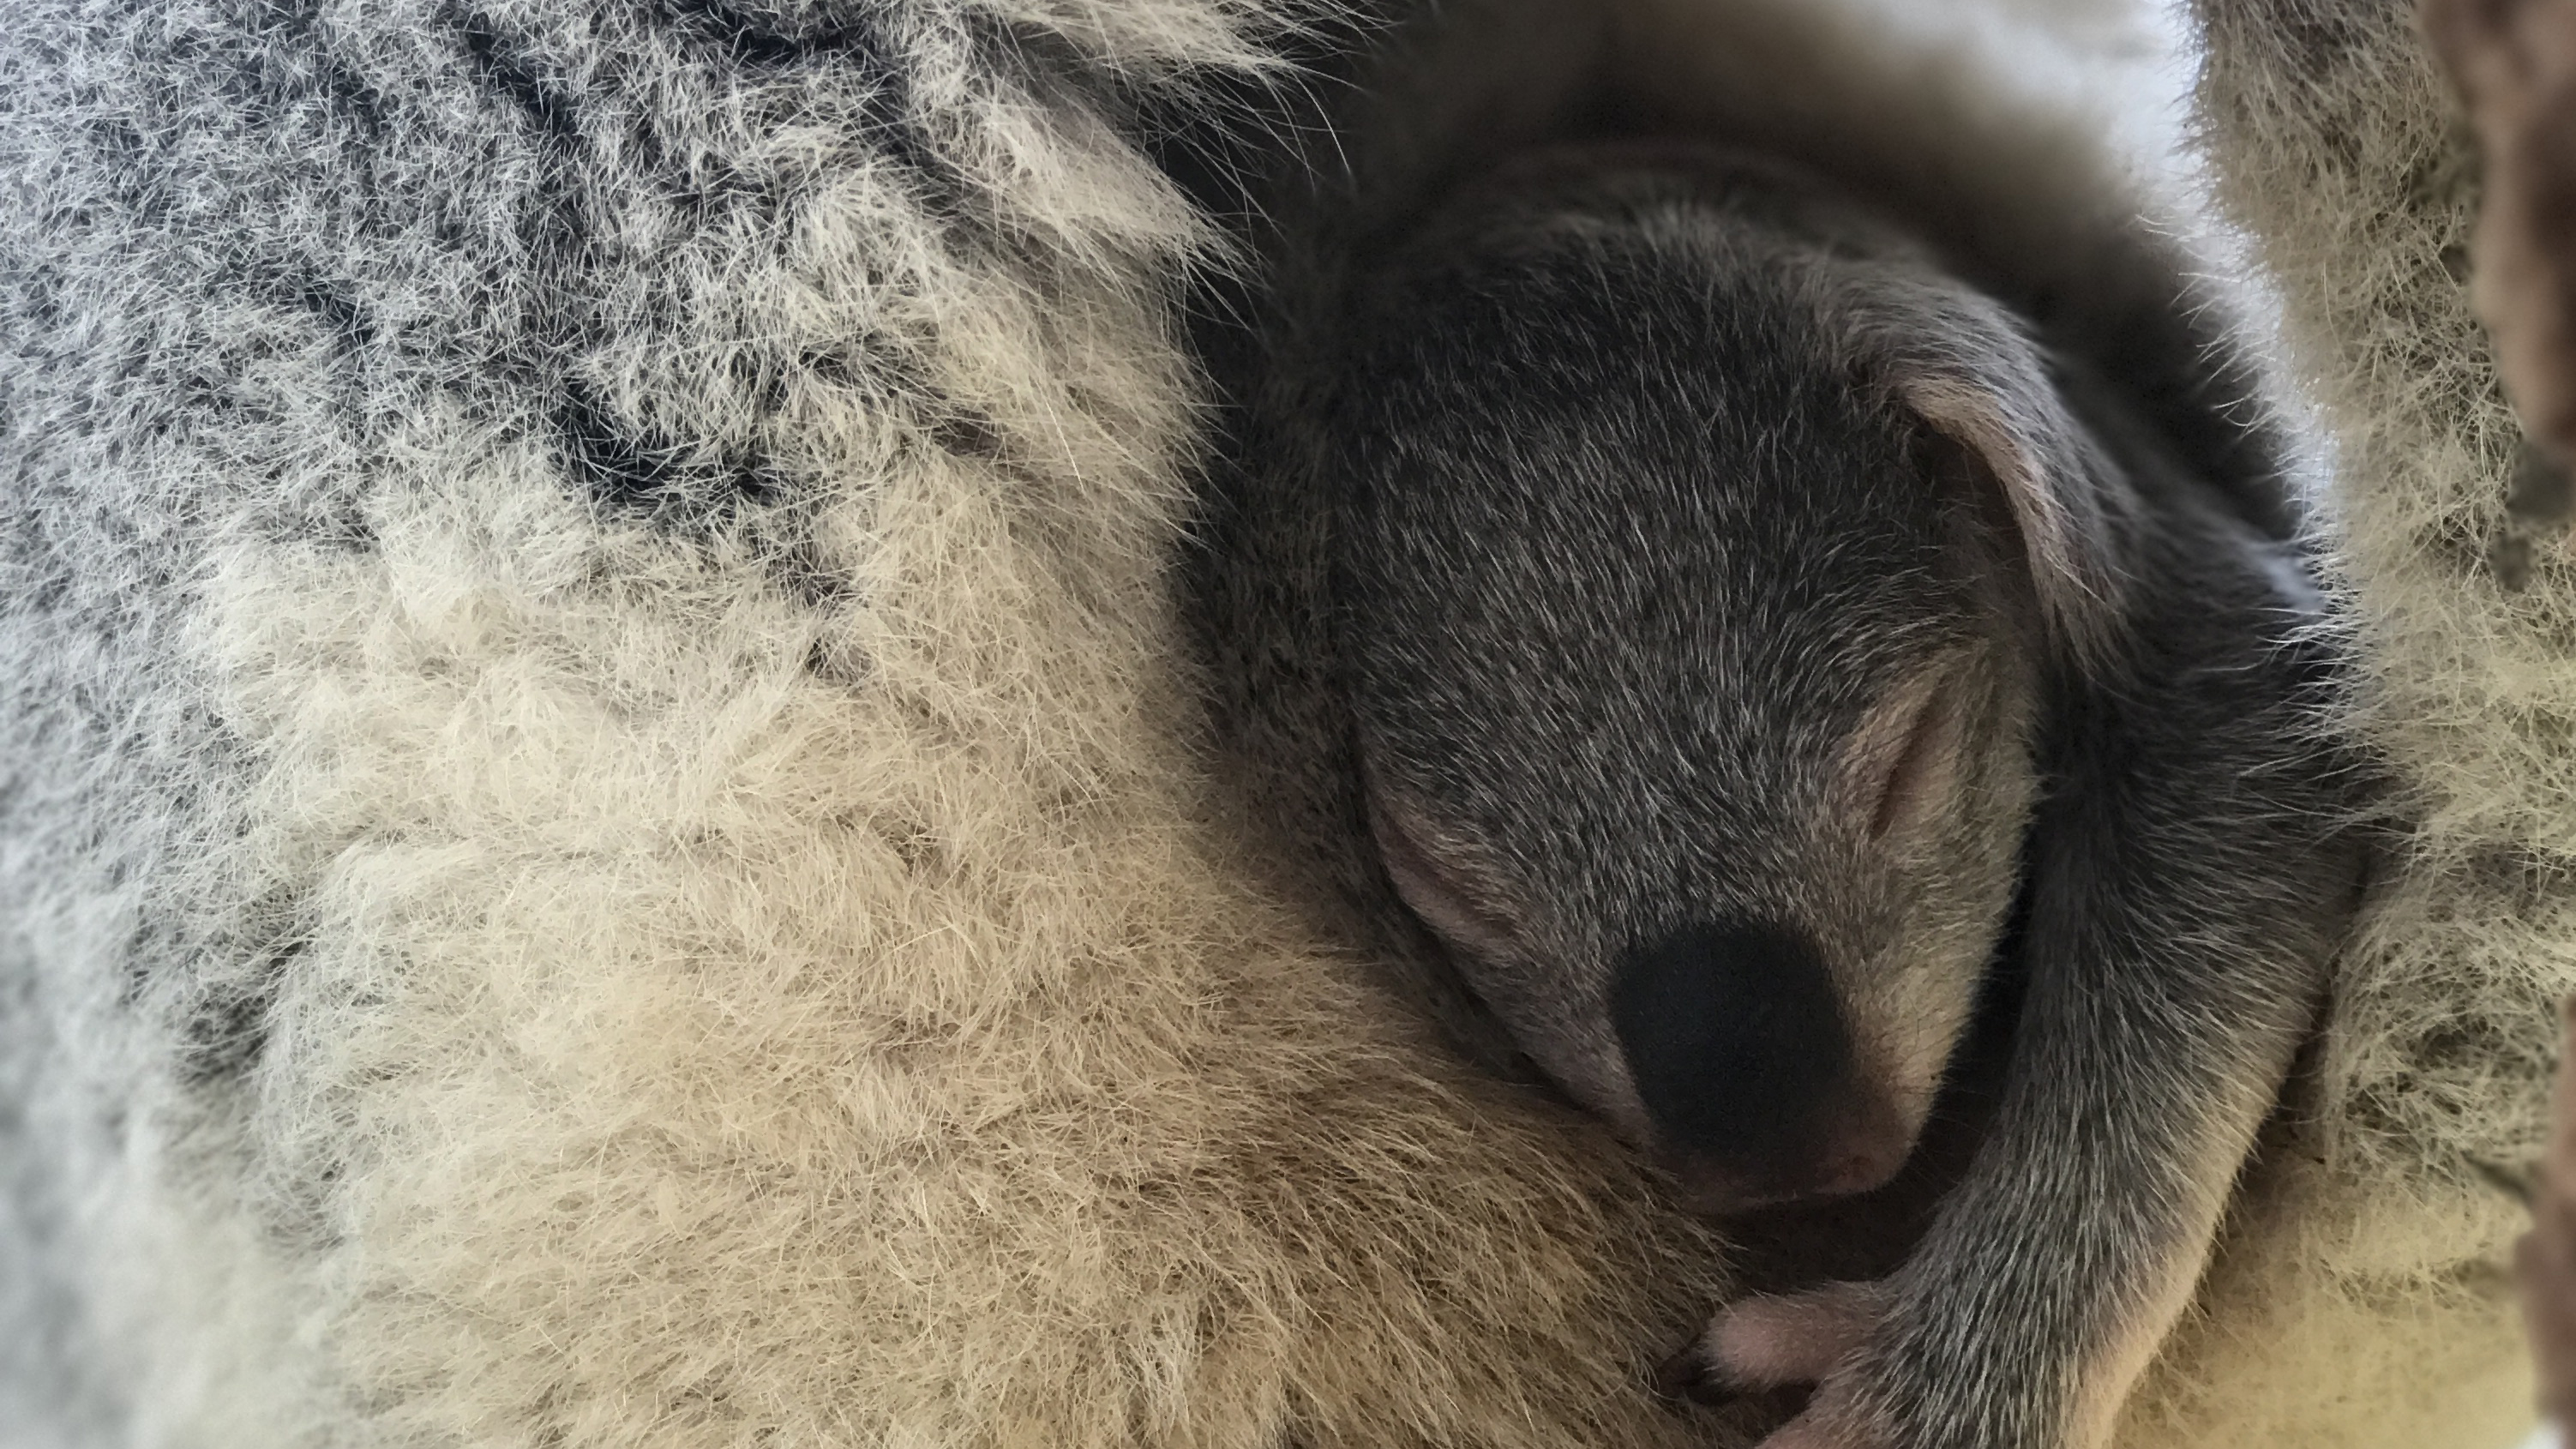 The koala joeys have been glimpsed snuggling up to their mothers' pouch at the Sydney zoo. (Wild Life Sydney Zoo)